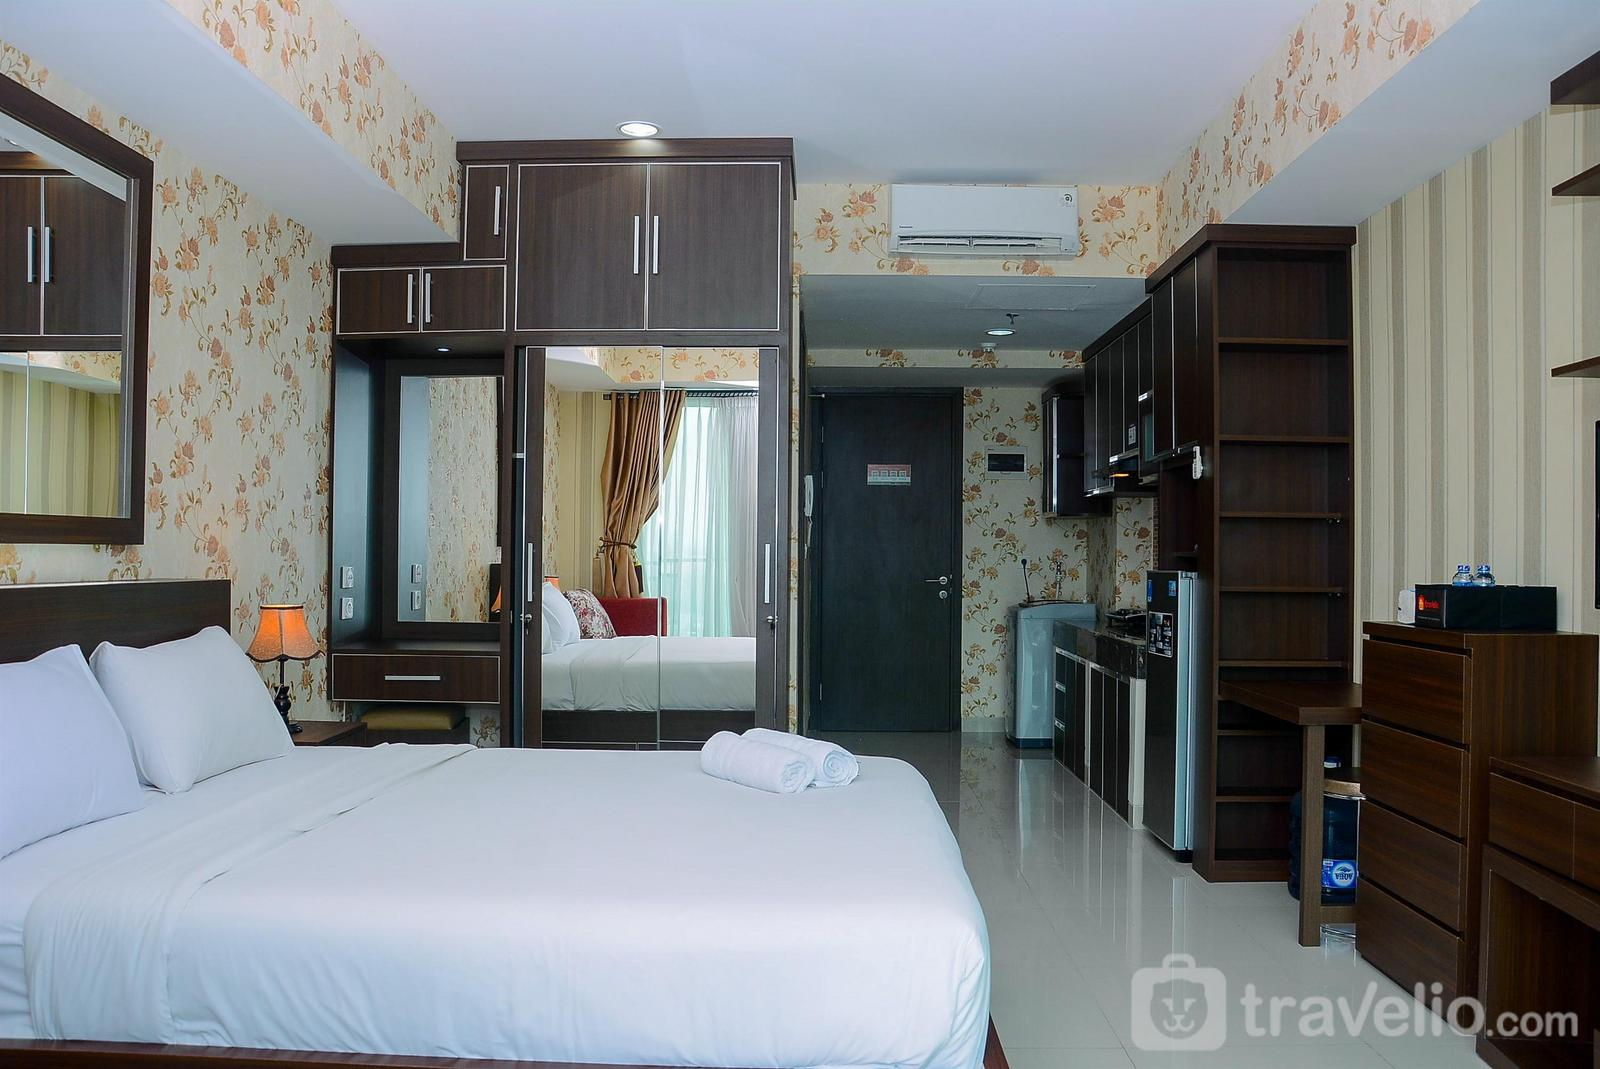 Apartemen Nine Residence - Comfortable with Modern Style Studio Apartment at Nine Residence By Travelio